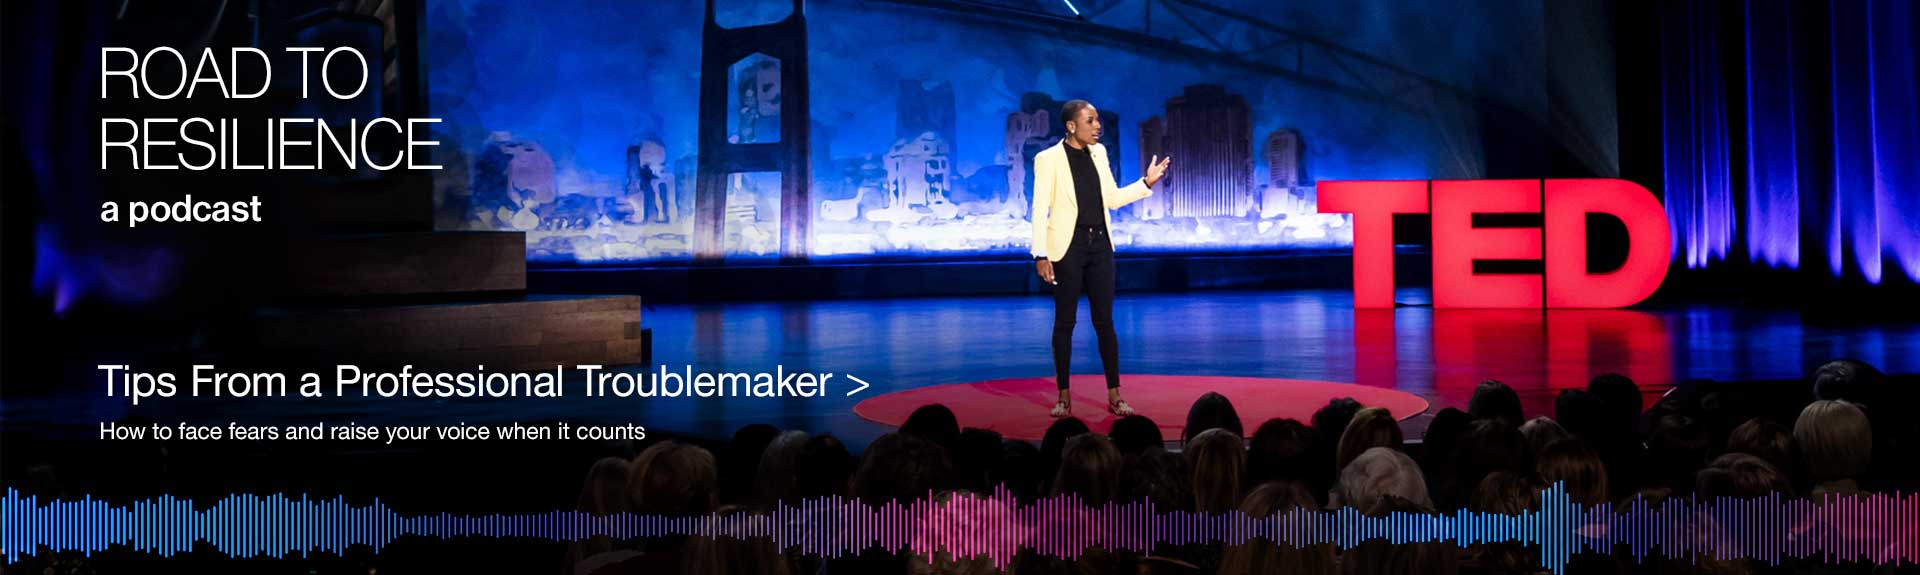 Luvvie Ajayi Jones at her TED Talk